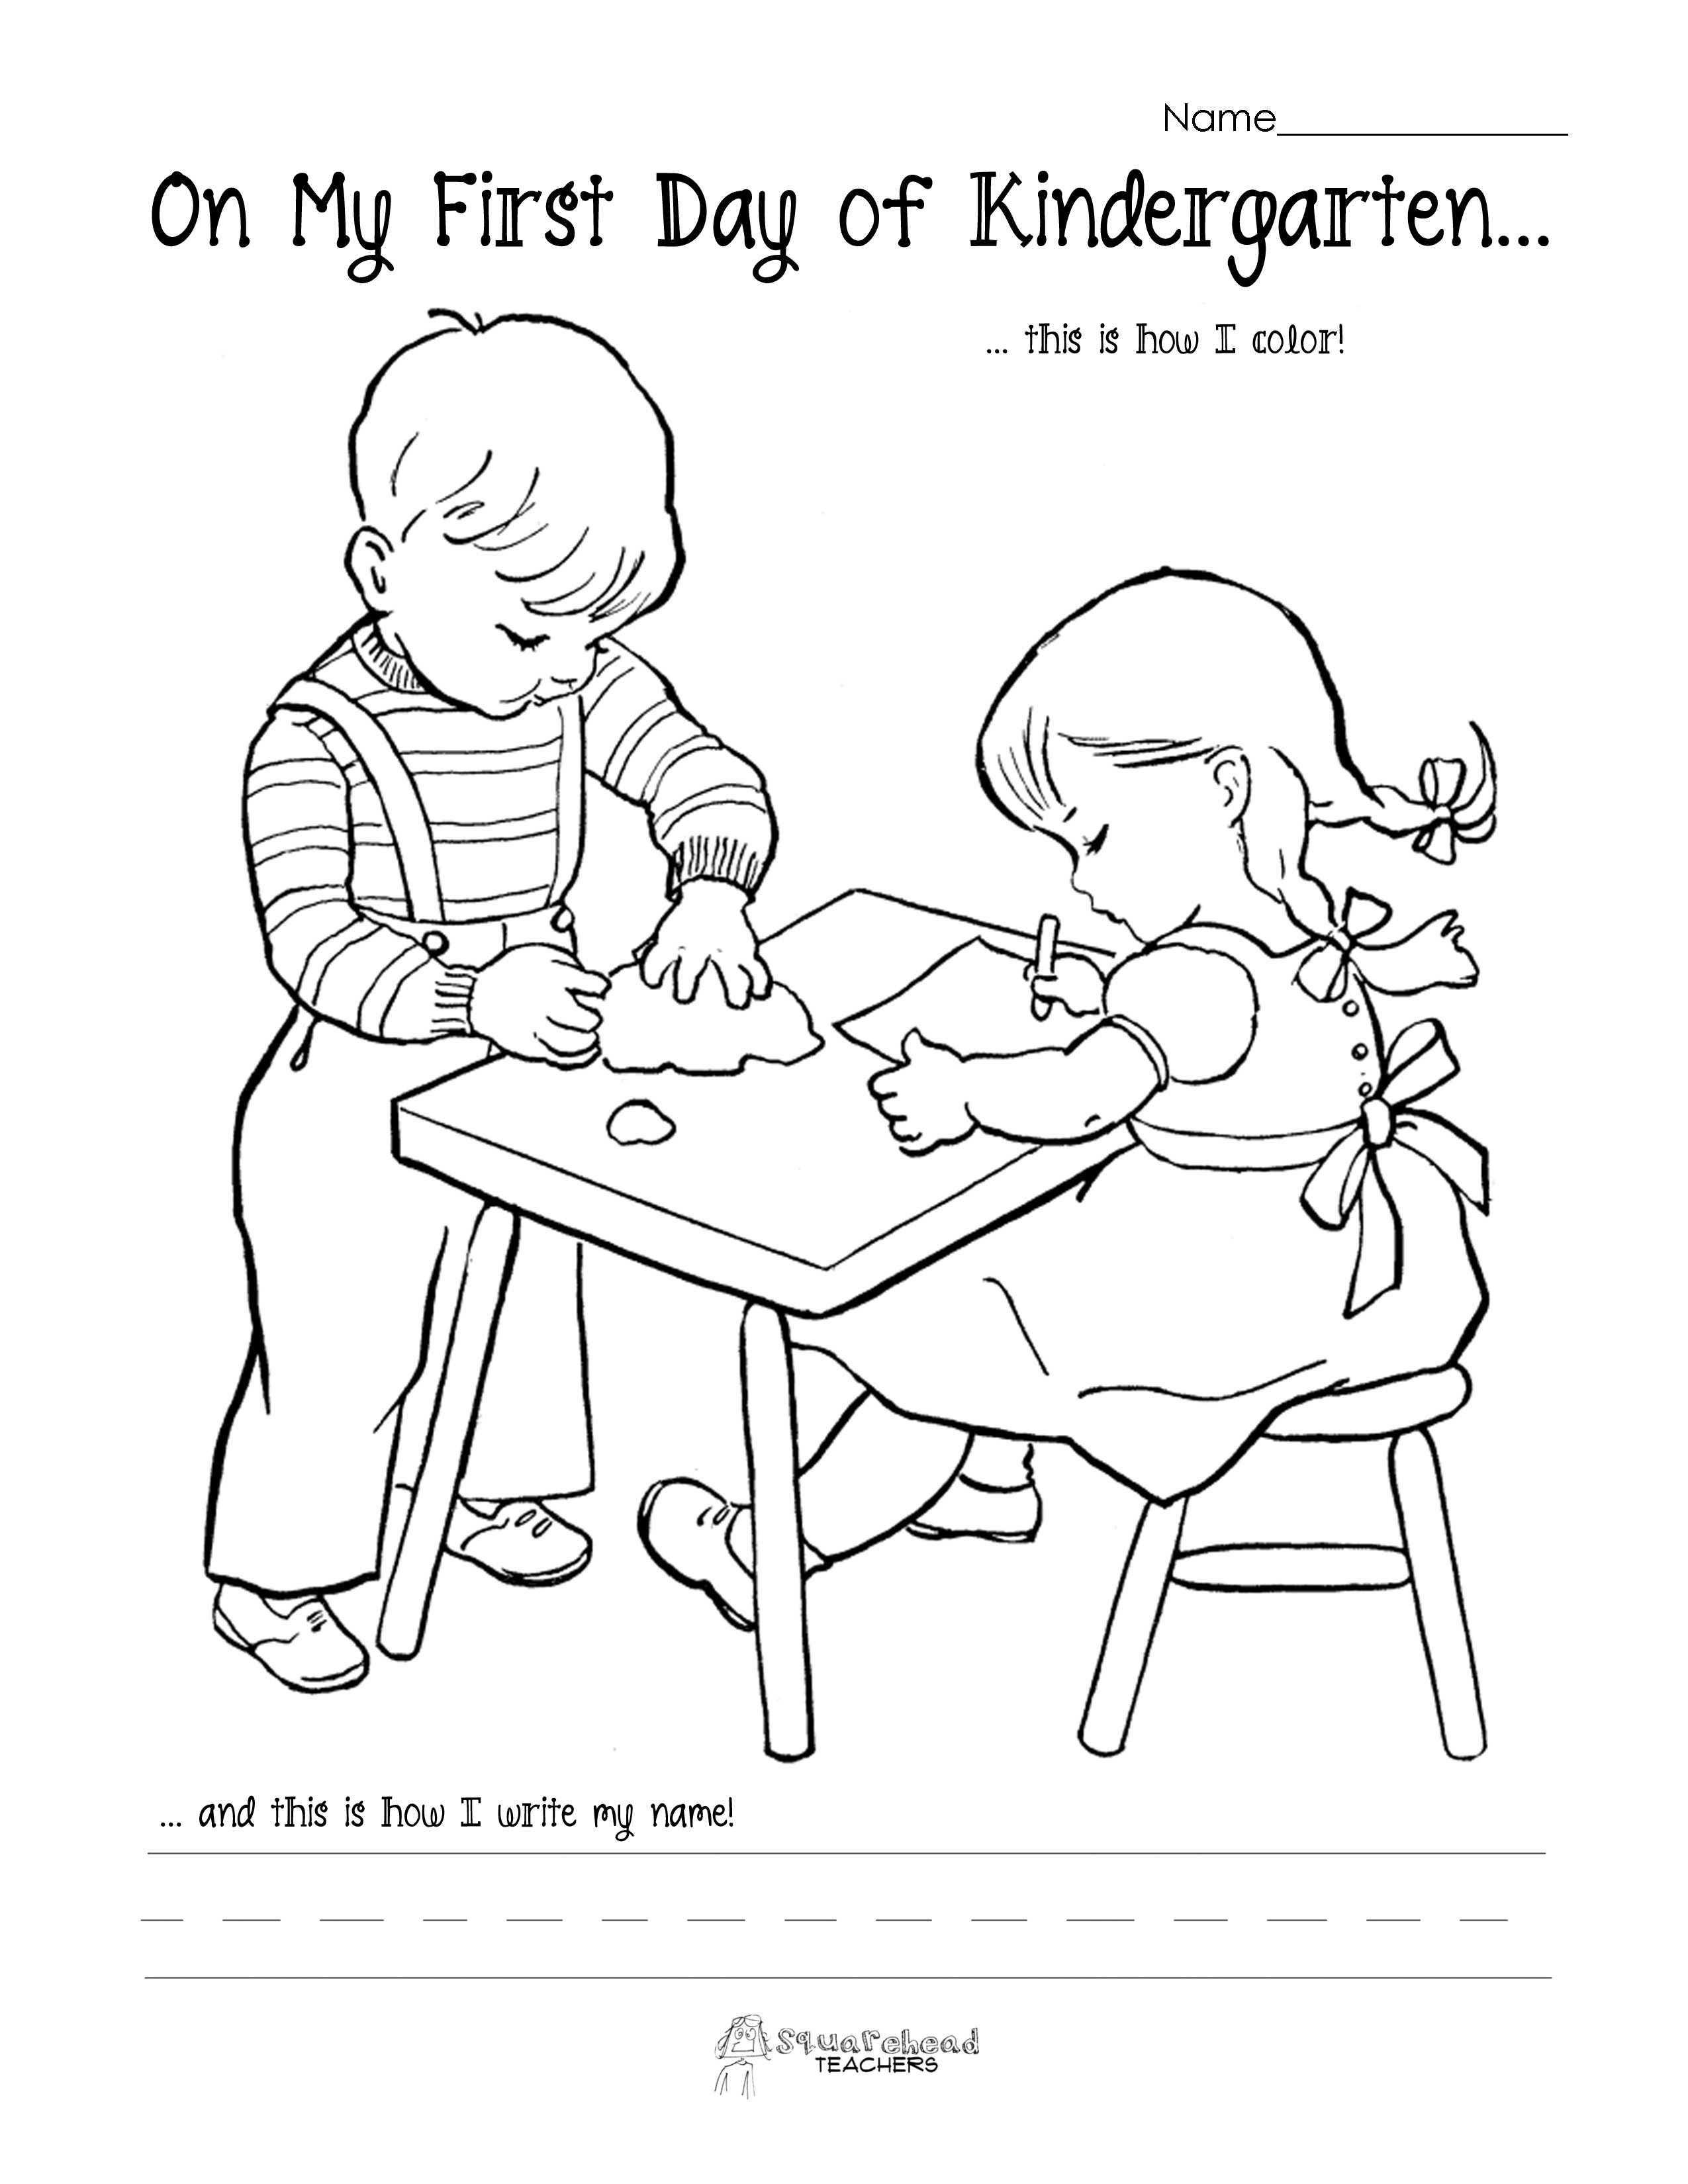 18 Best Images Of Fun Behavior Worksheets Printable